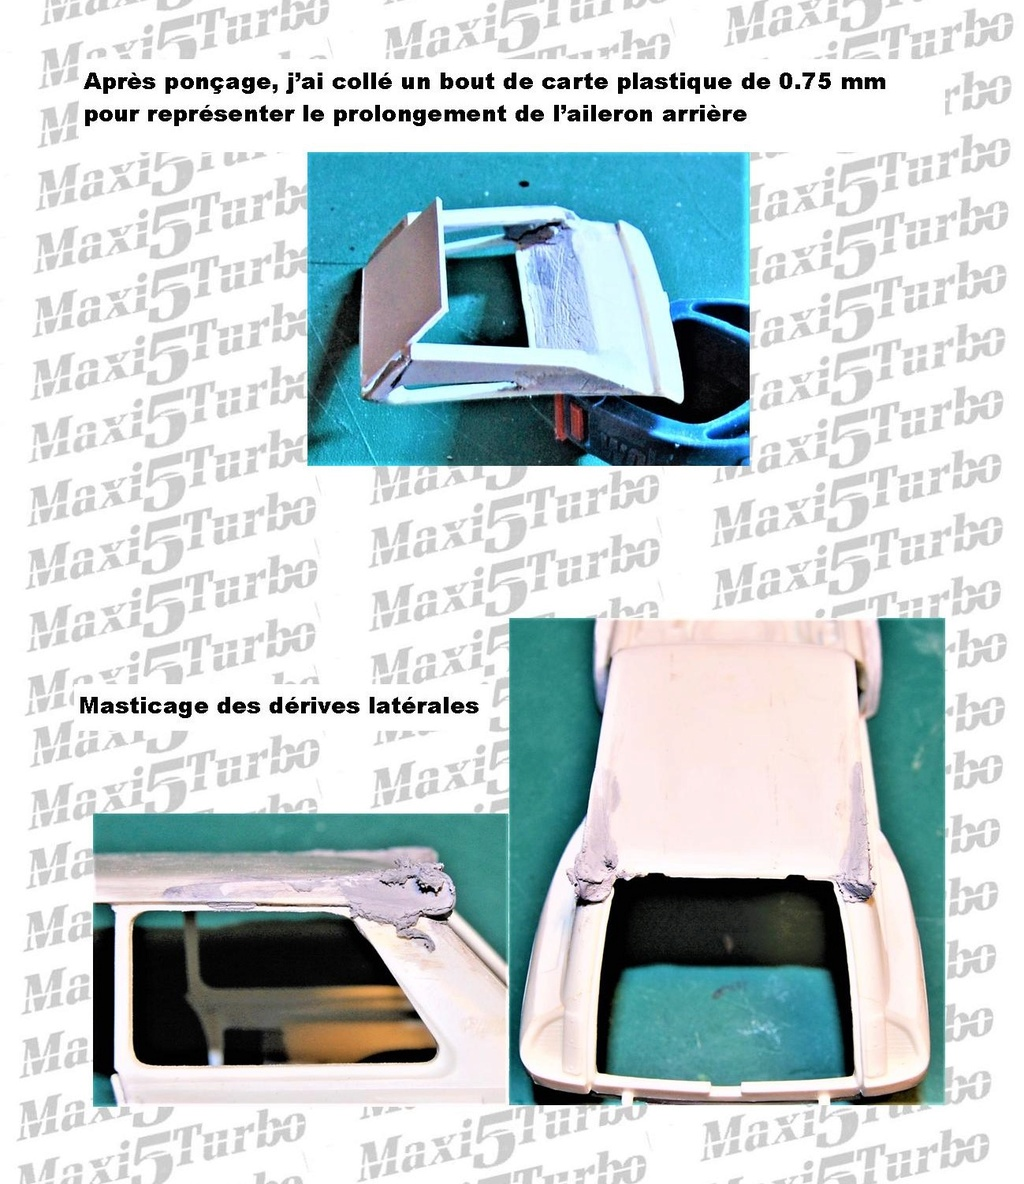 (1/24) Renault 5 Maxi turbo Ref 80717 ( Hors delai ) - Page 2 2811